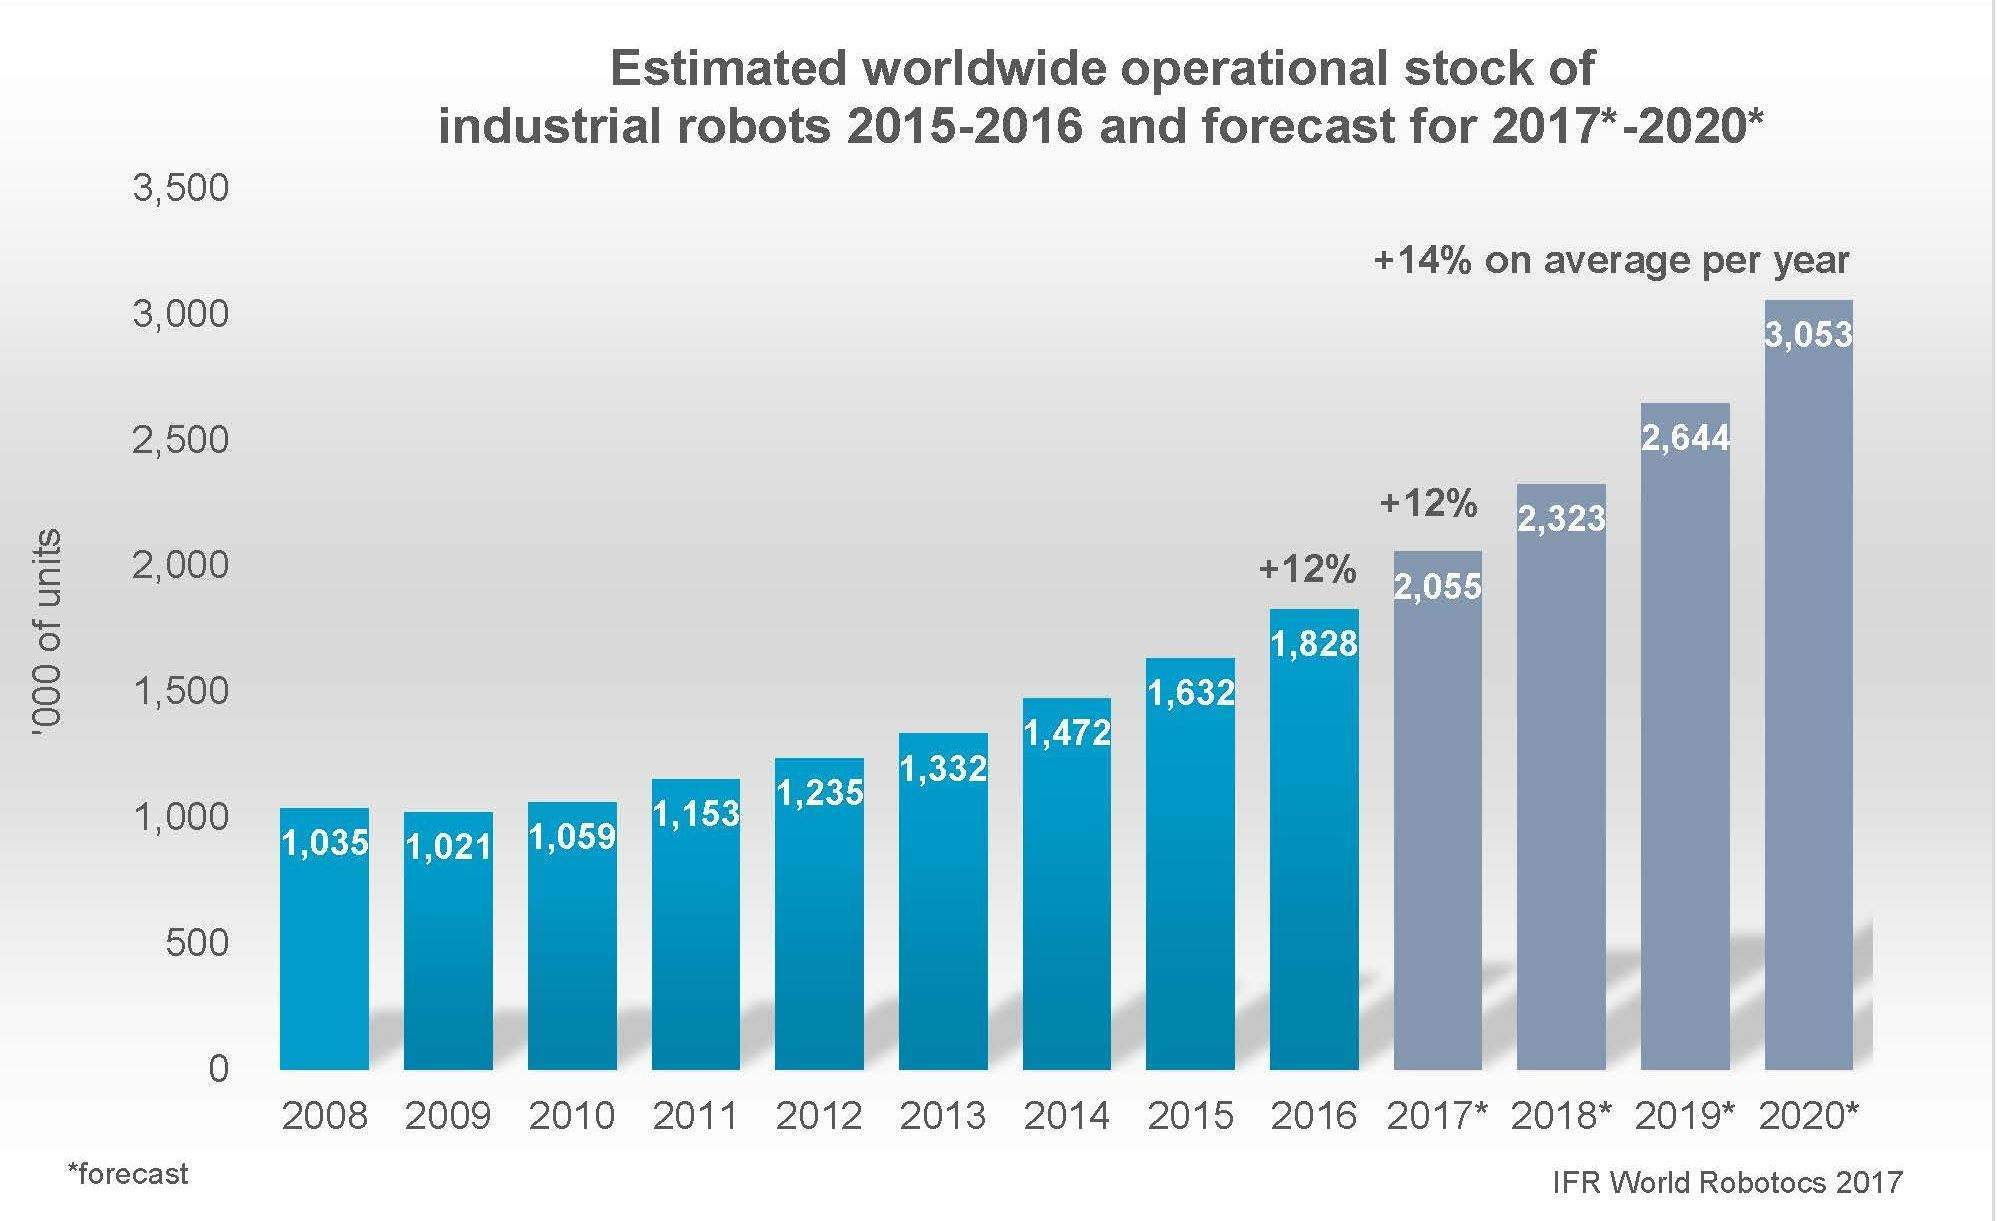 Industrial robots are expected to double by 2020